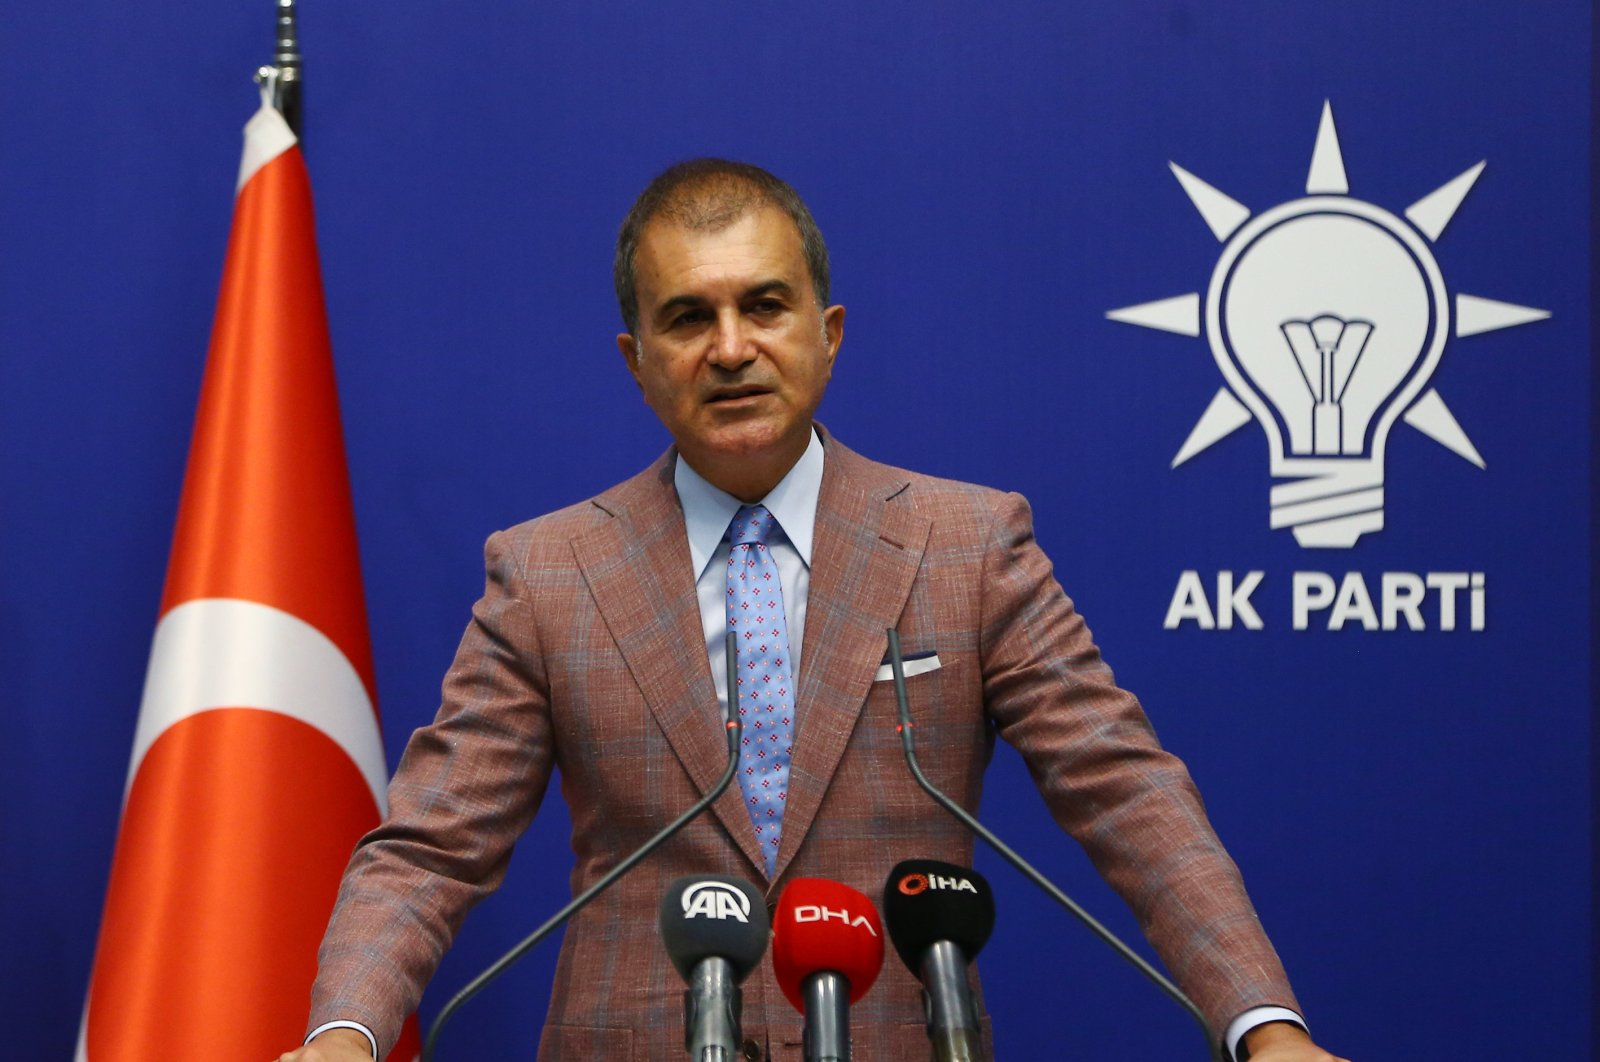 The spokesperson of the ruling Justice and Development Party (AK Party) speaks after the Central Executive Committee (MYK) meeting of the party in Ankara, Turkey, Sept. 23, 2020. (AA Photo)